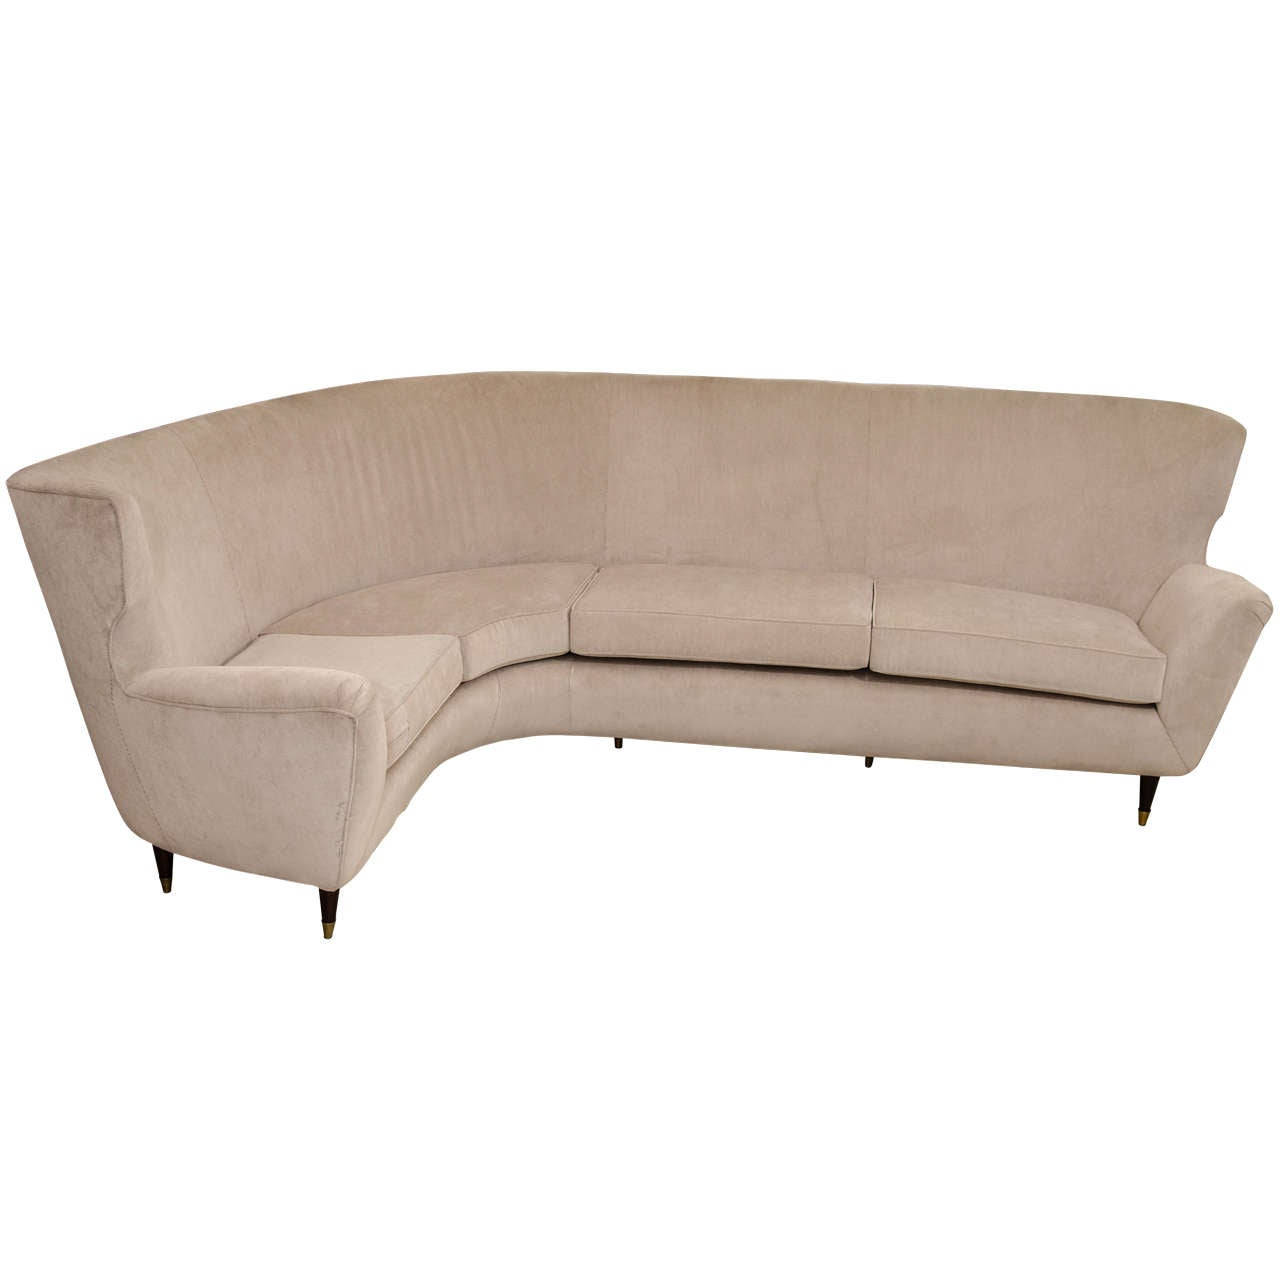 l shaped modern sofa brown leather grey walls curvy quotl quot at 1stdibs